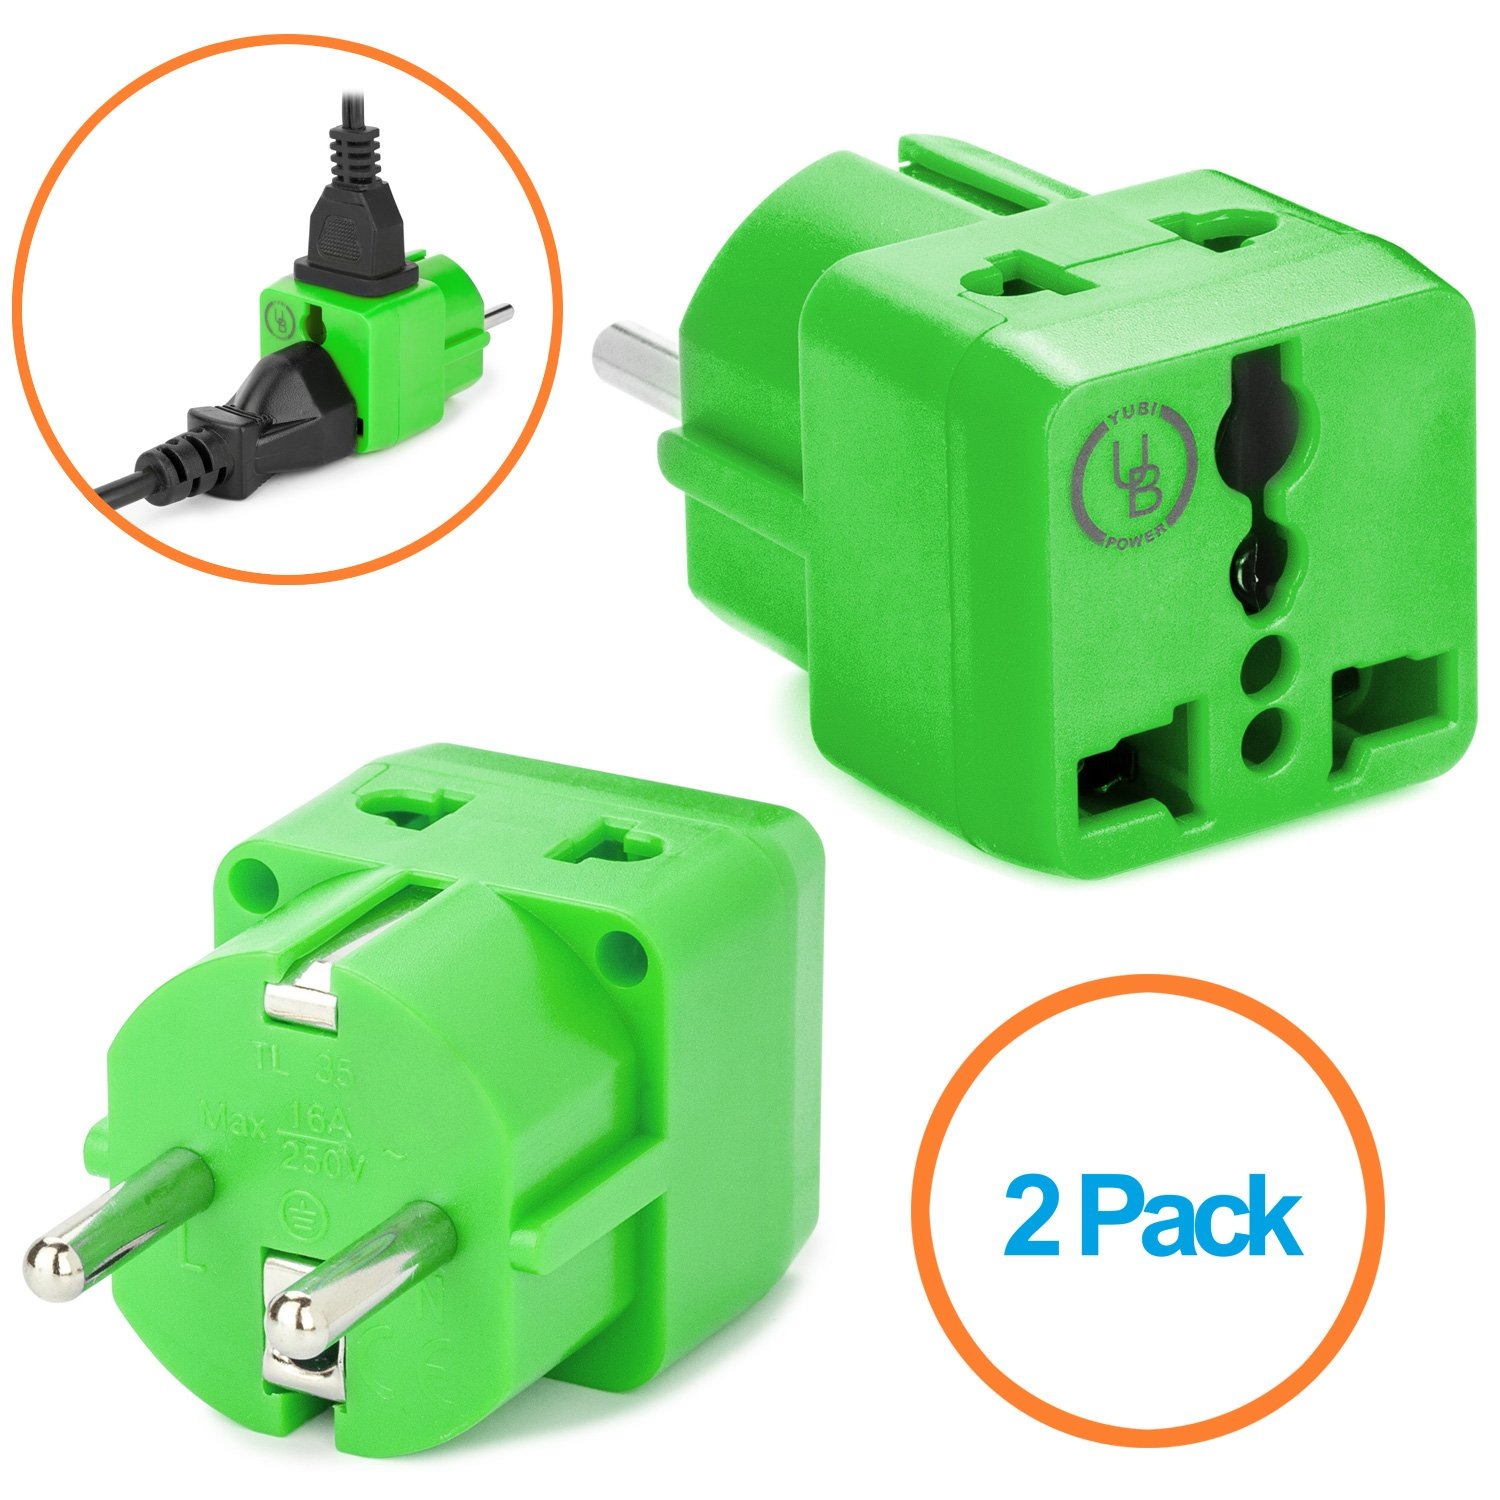 European Plug Adapter by Yubi Power 2 in 1 Universal Travel Adapter with 2 Universal Outlets - 2 Pack - Green - Shucko Type E/F for France, Germany, Spain, Sweden, Turkey, Ukraine and More! LYSB0170CMCZ6-CMPTRACCS